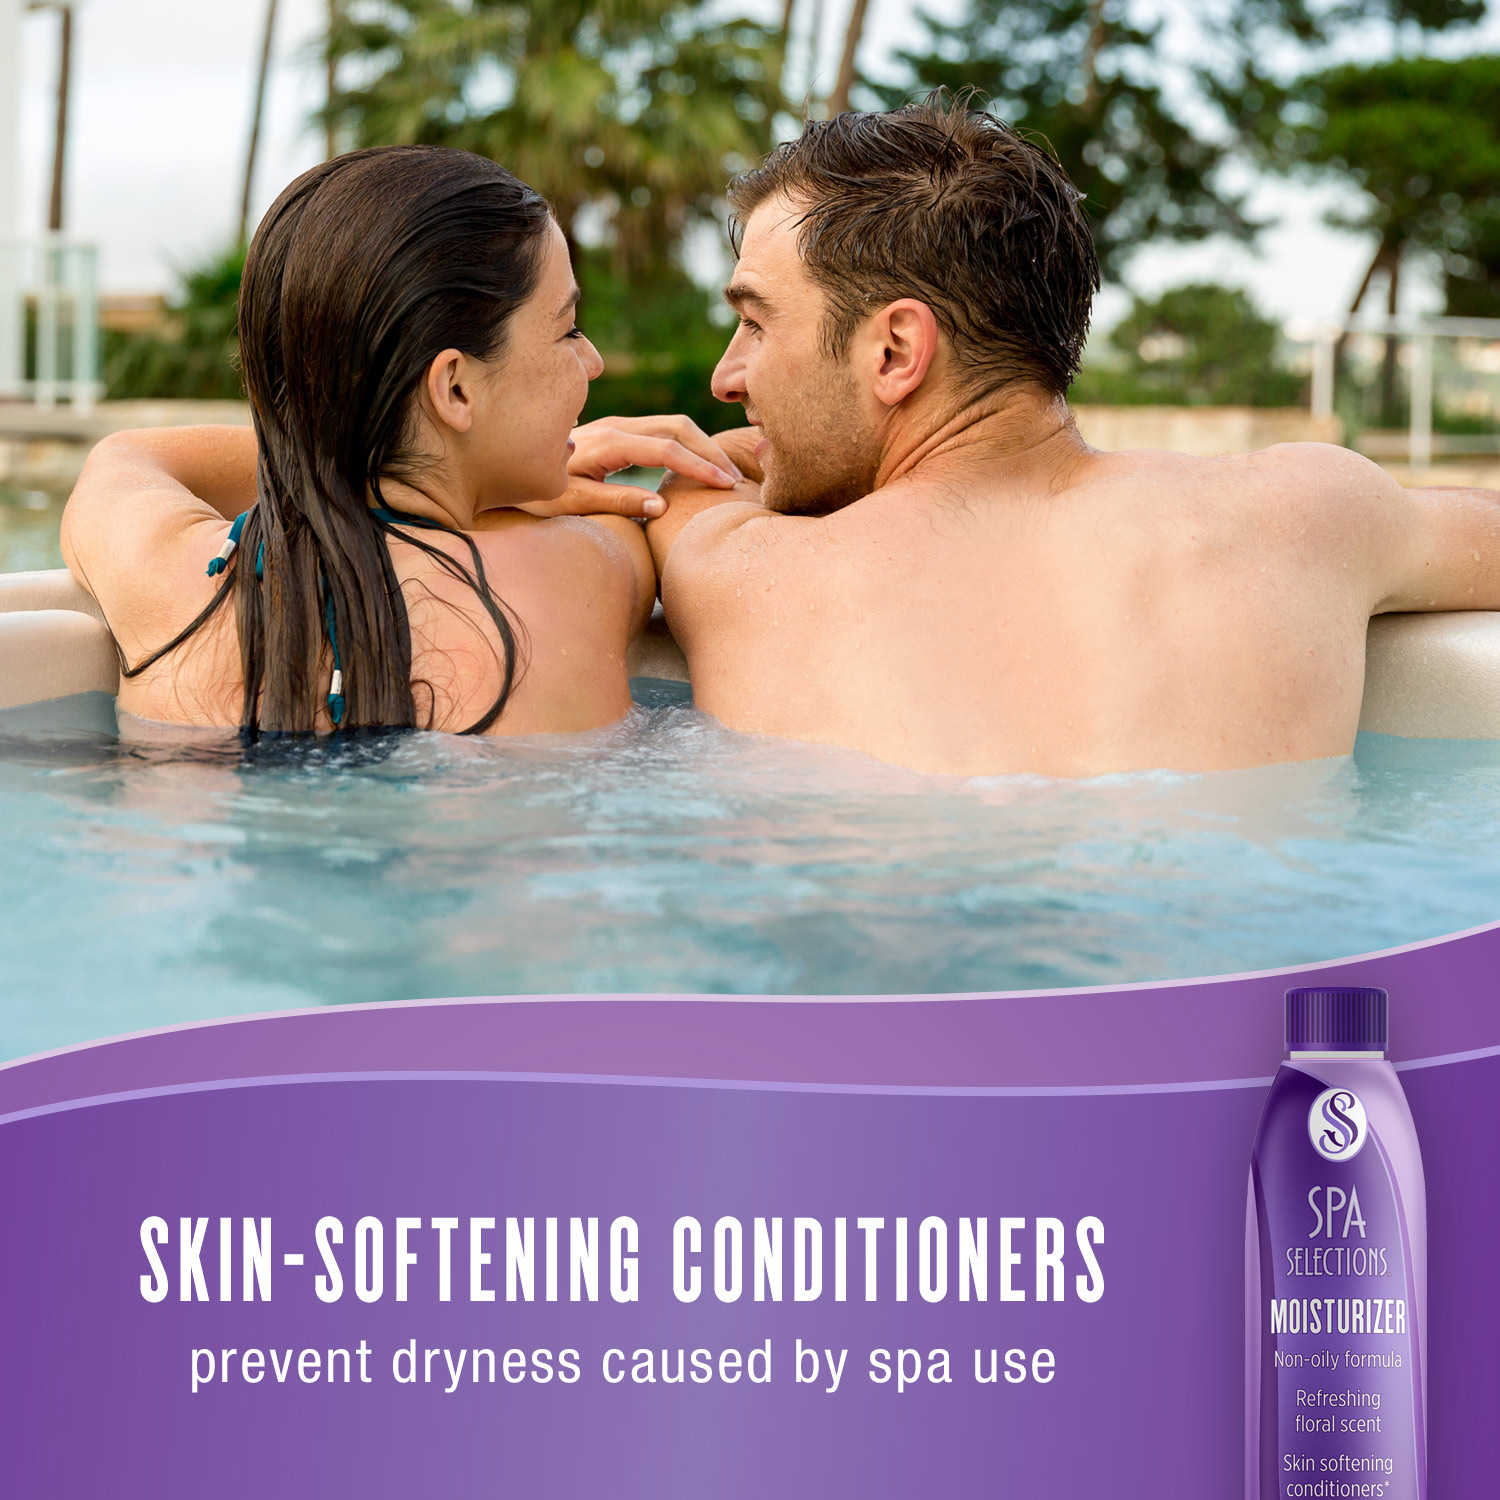 Spa Selections Moisturizer has skin-softening conditioners that prevent dryness caused by spa use. Photo of a couple enjoying an outdoor spa on a sunny day.